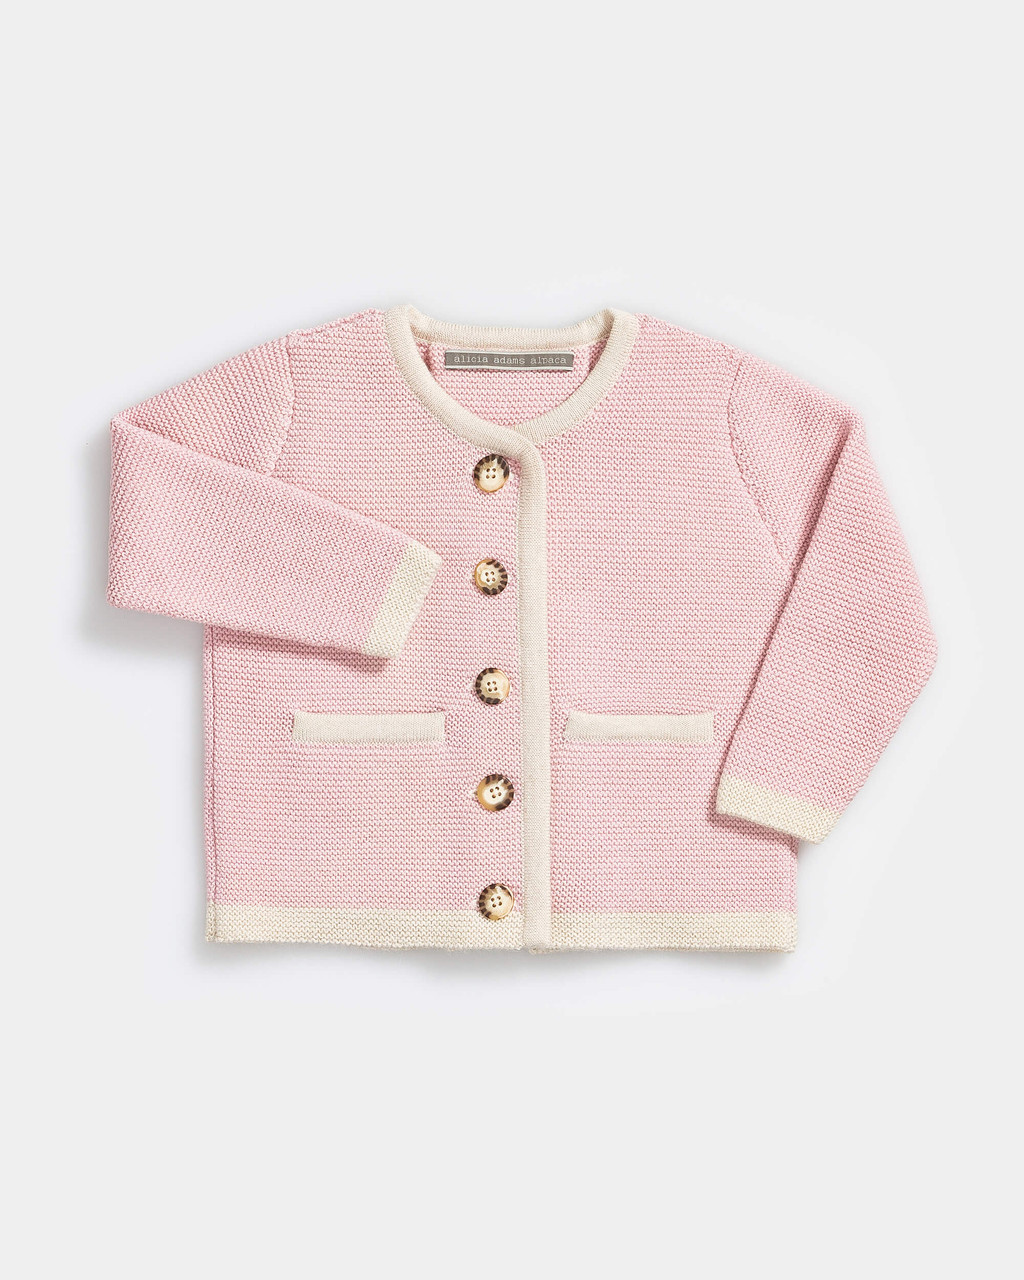 Alicia Adams Alpaca Salzburg Cardigan, alpaca baby clothes, alpaca sweater, baby alpaca sweater, alpaca clothing, light pink and ivory alpaca sweater